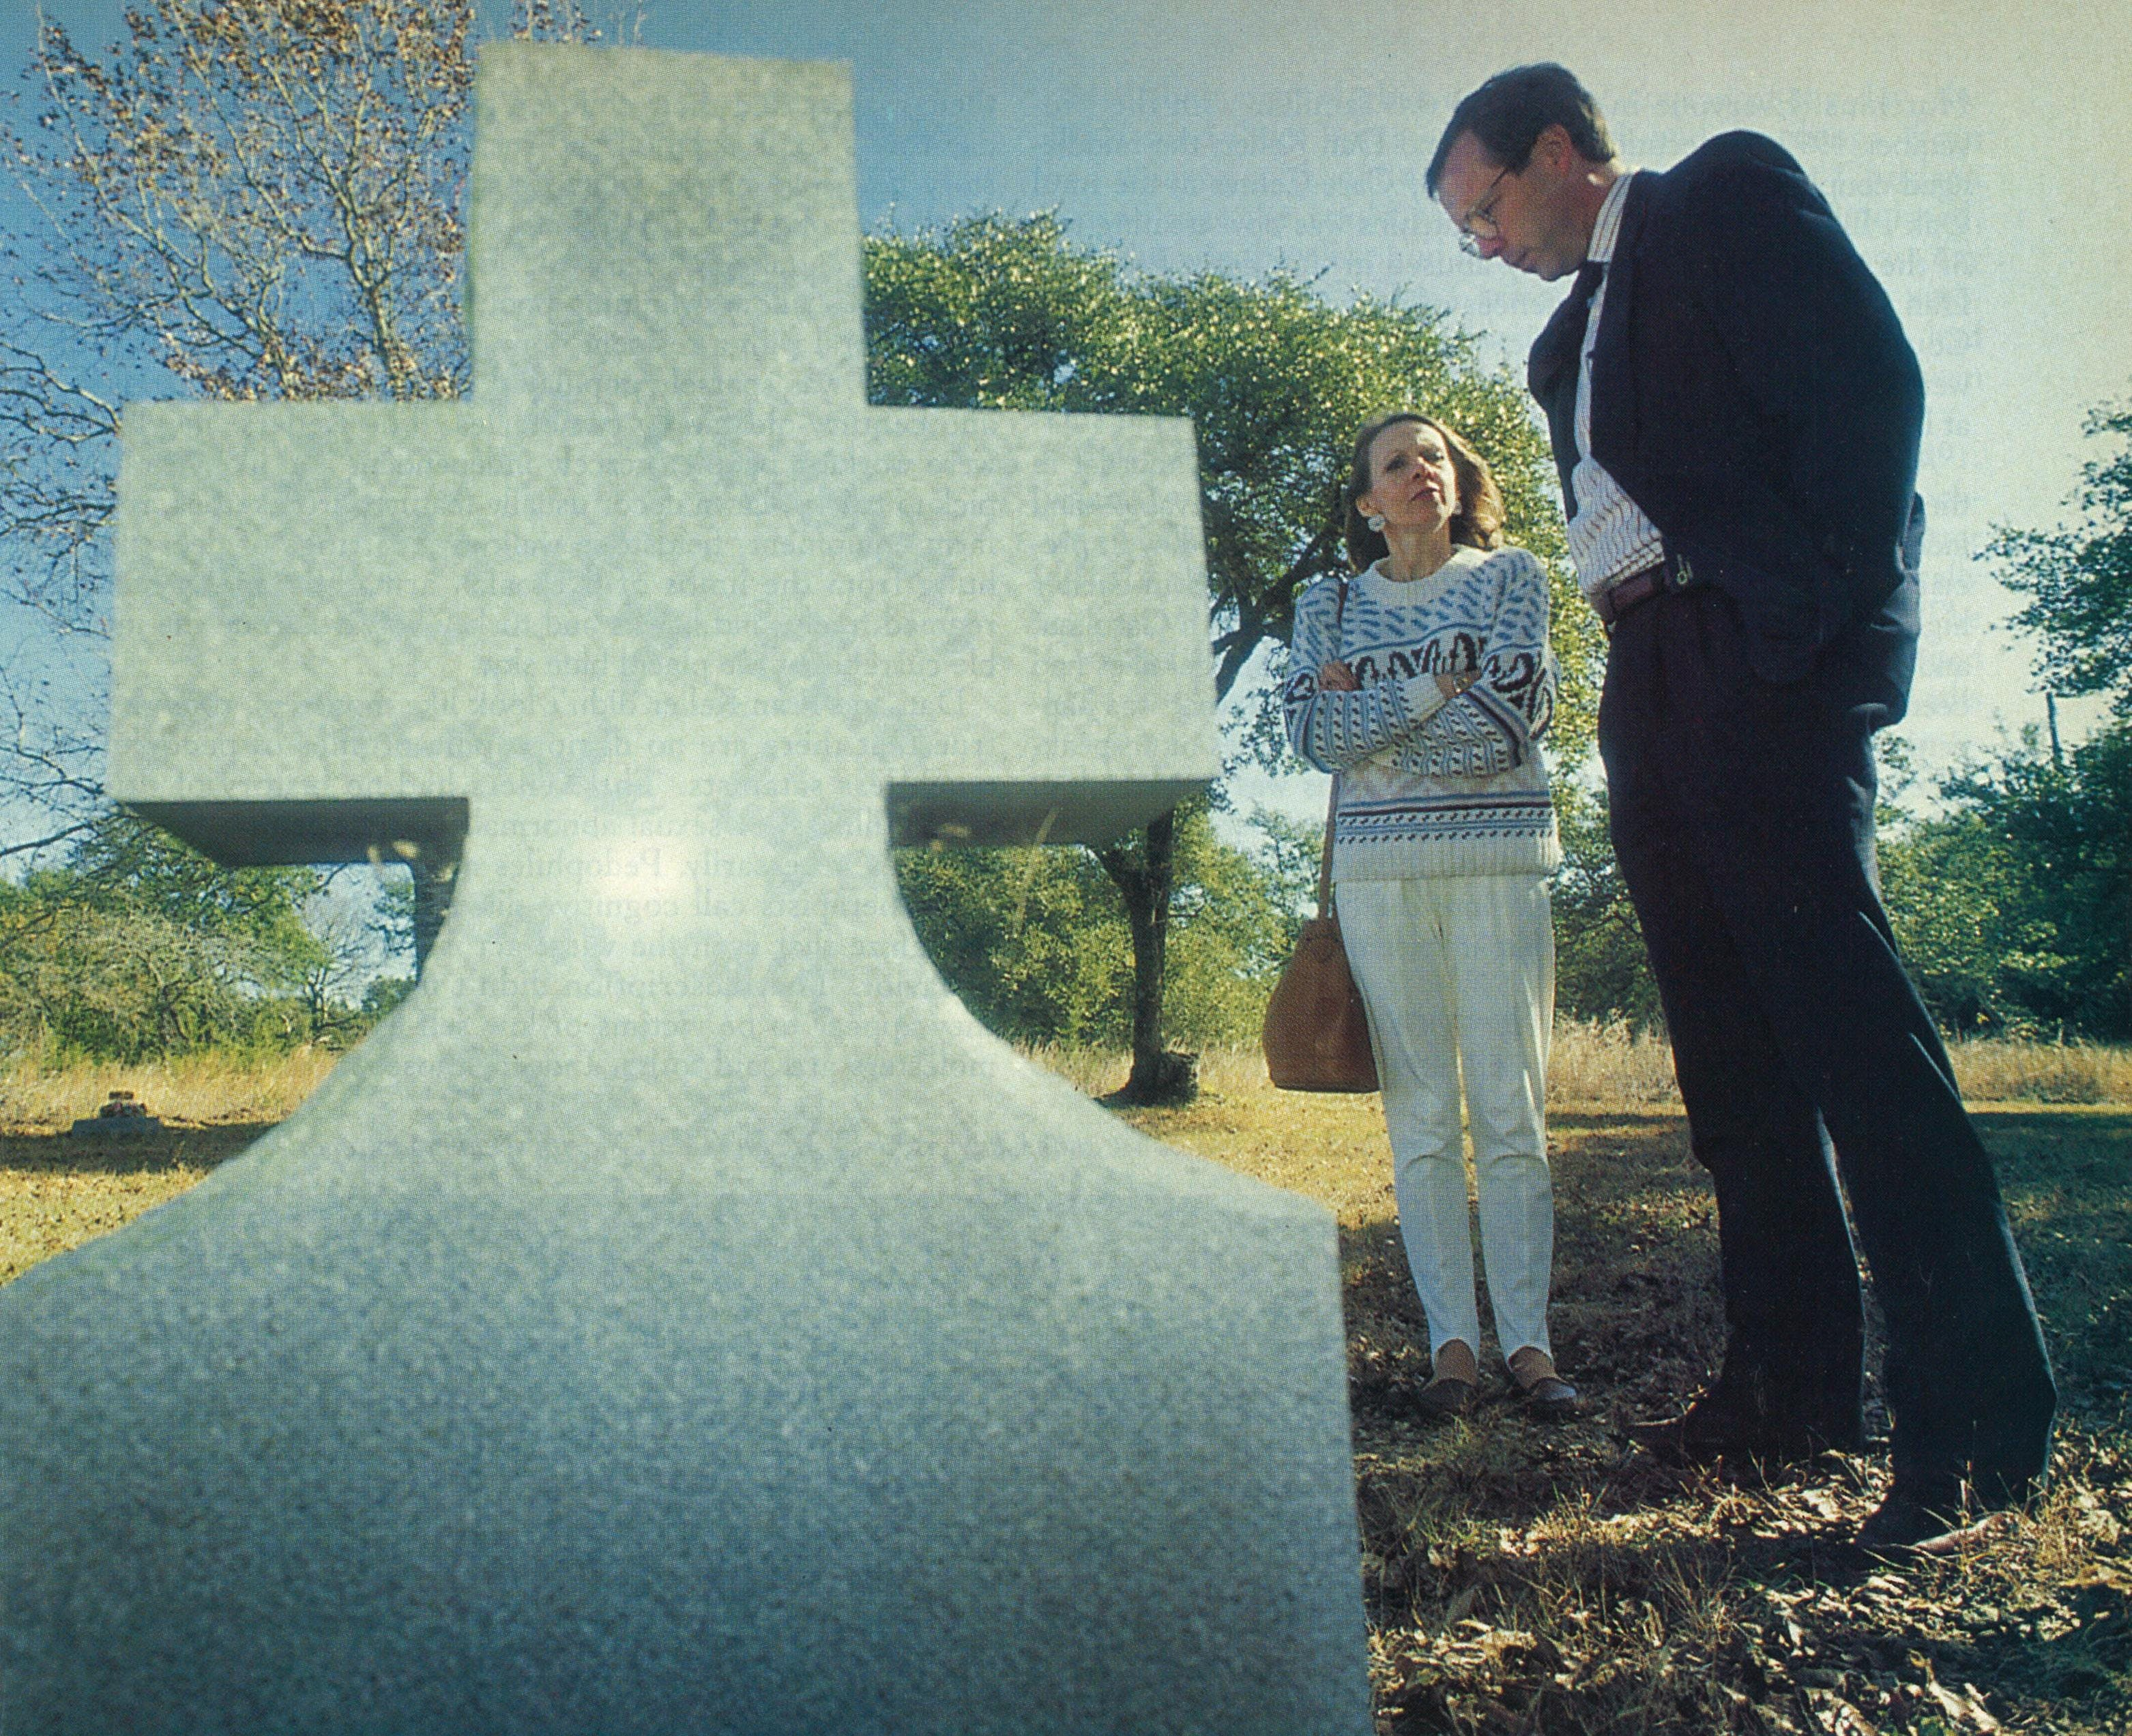 Sergeant Larry Oliver with Suzanne Chaviers inspecting graves at a cemetery near Austin where the Kellers allegedly buried their victims.